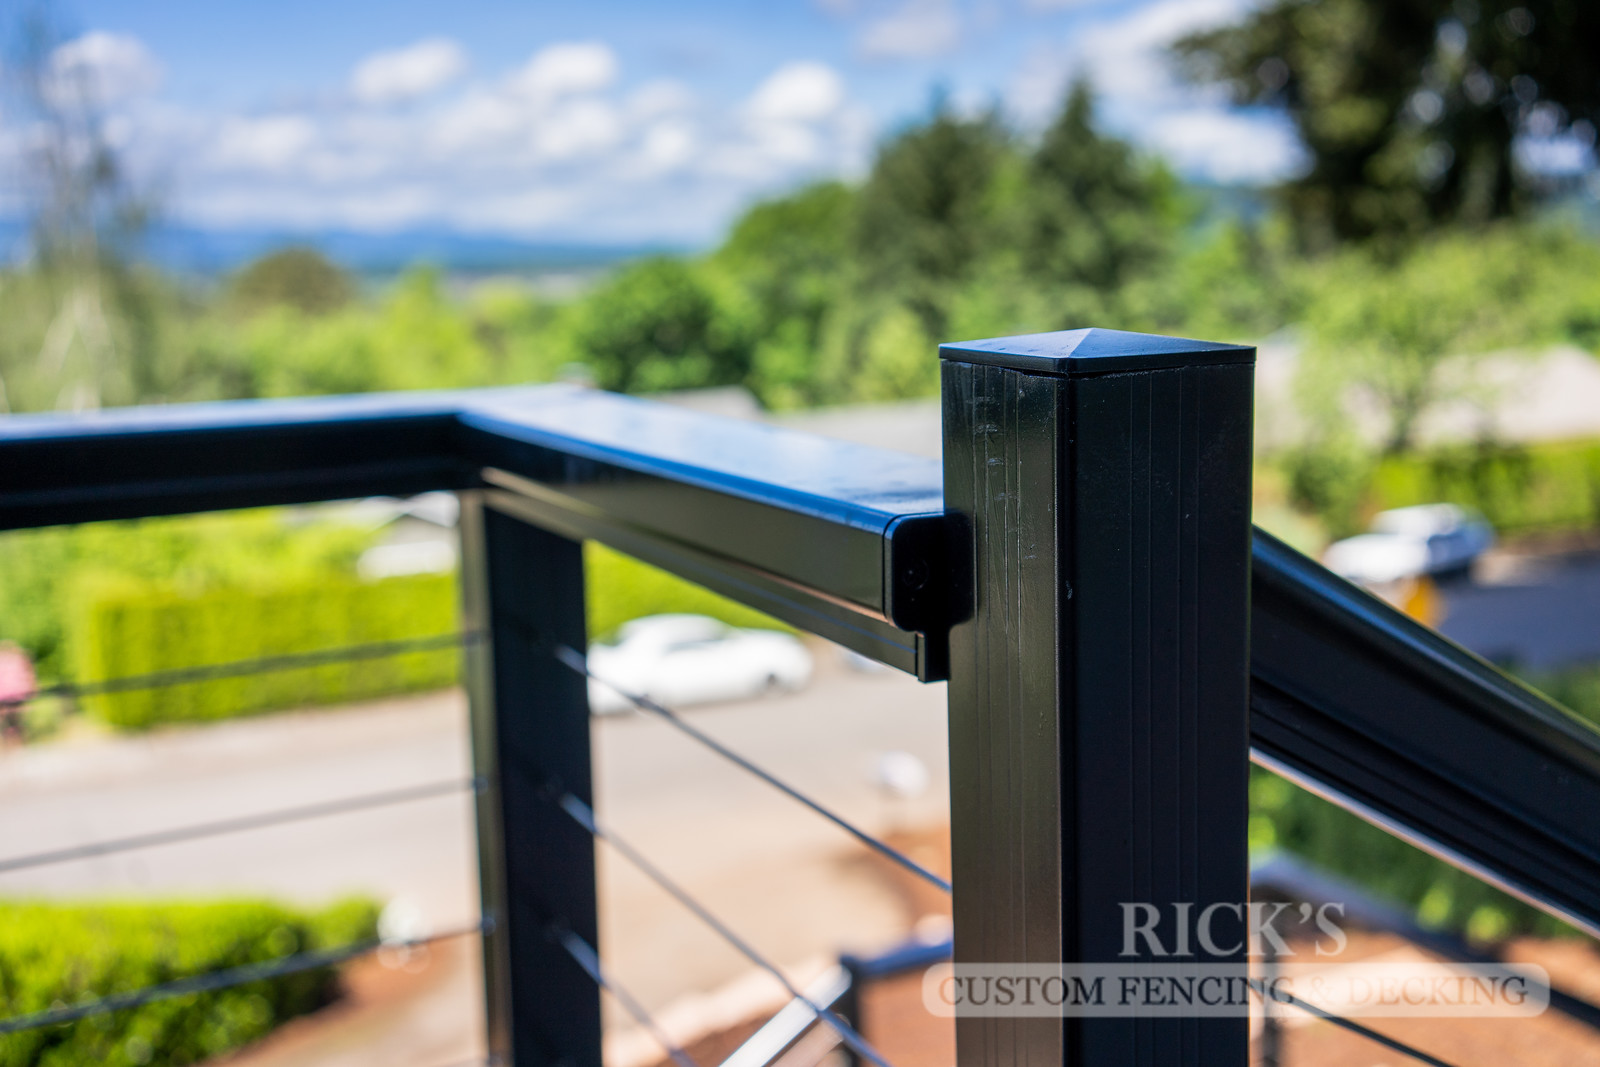 1701 - Aluminum Handrail with Stainless Steel Cable